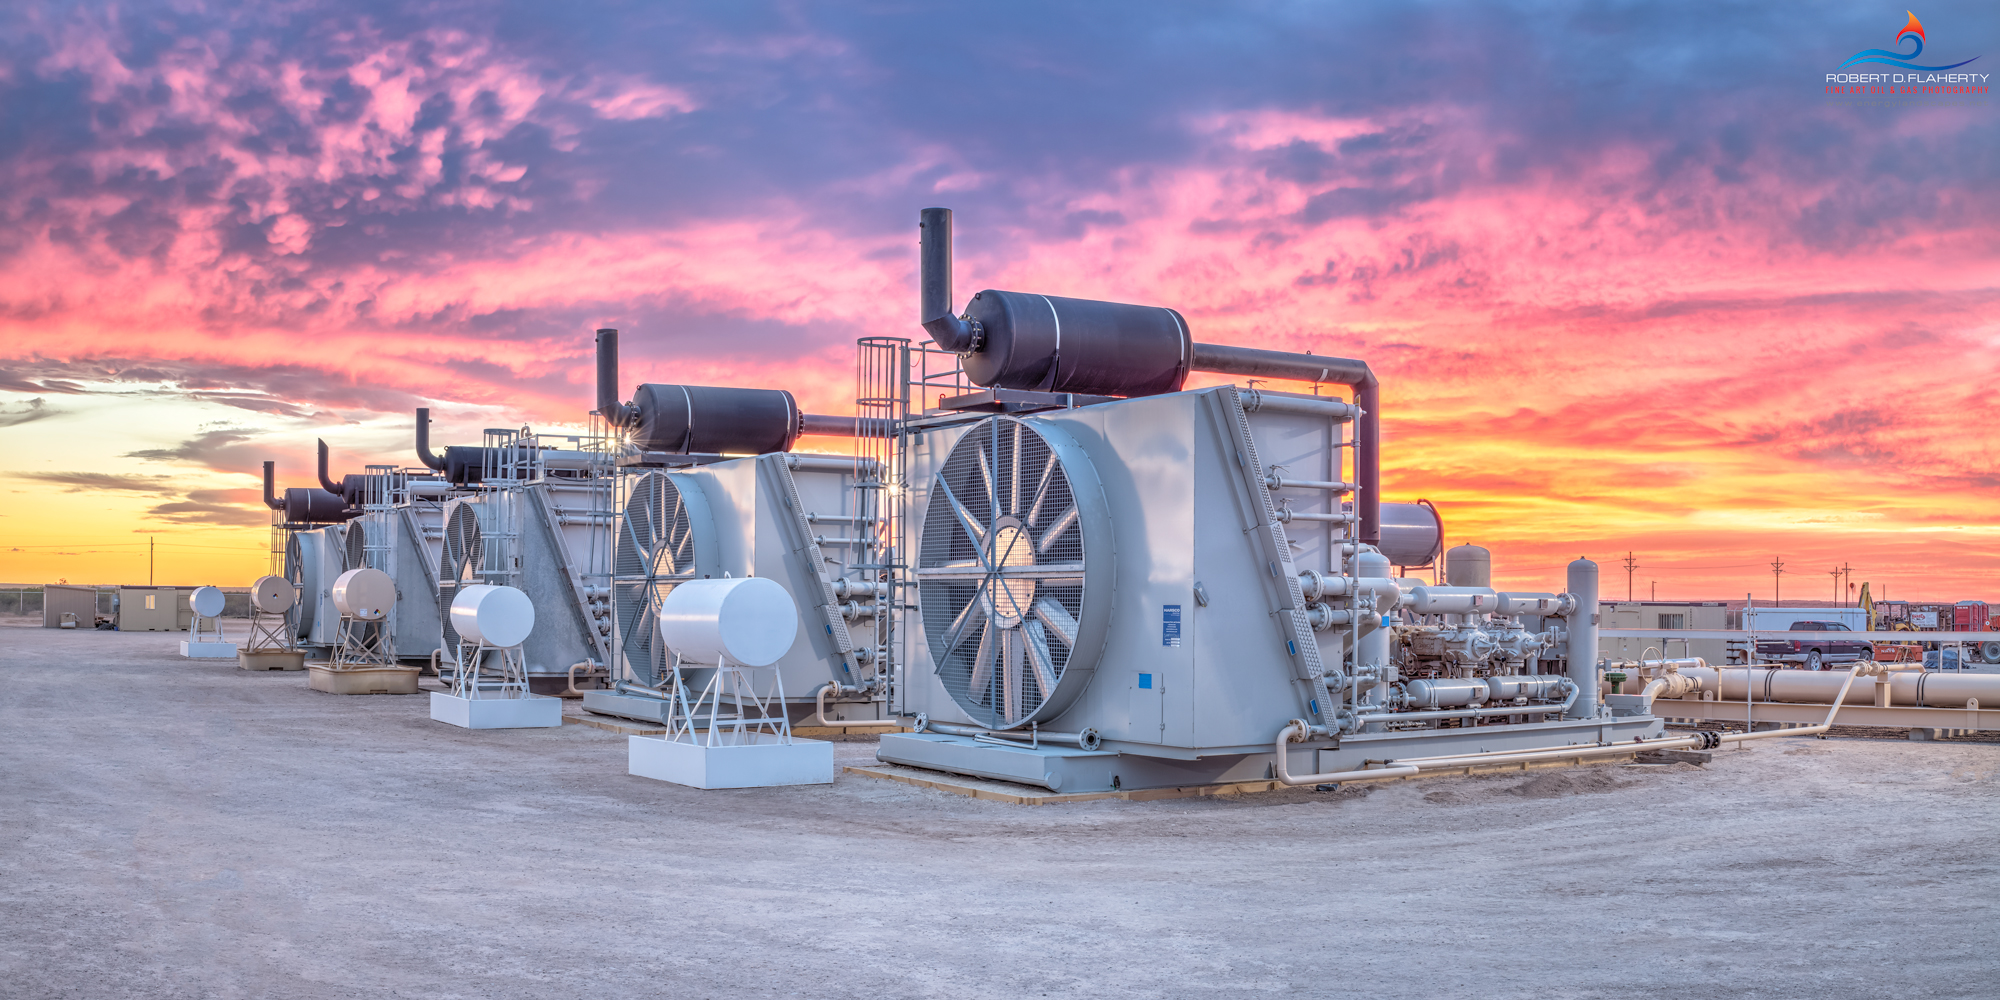 Delaware Basin, sunset, Permian Basin, compressor, compressor Battery, Summer, mural, fine art mural, Texas, West Texas, high resolution , photo